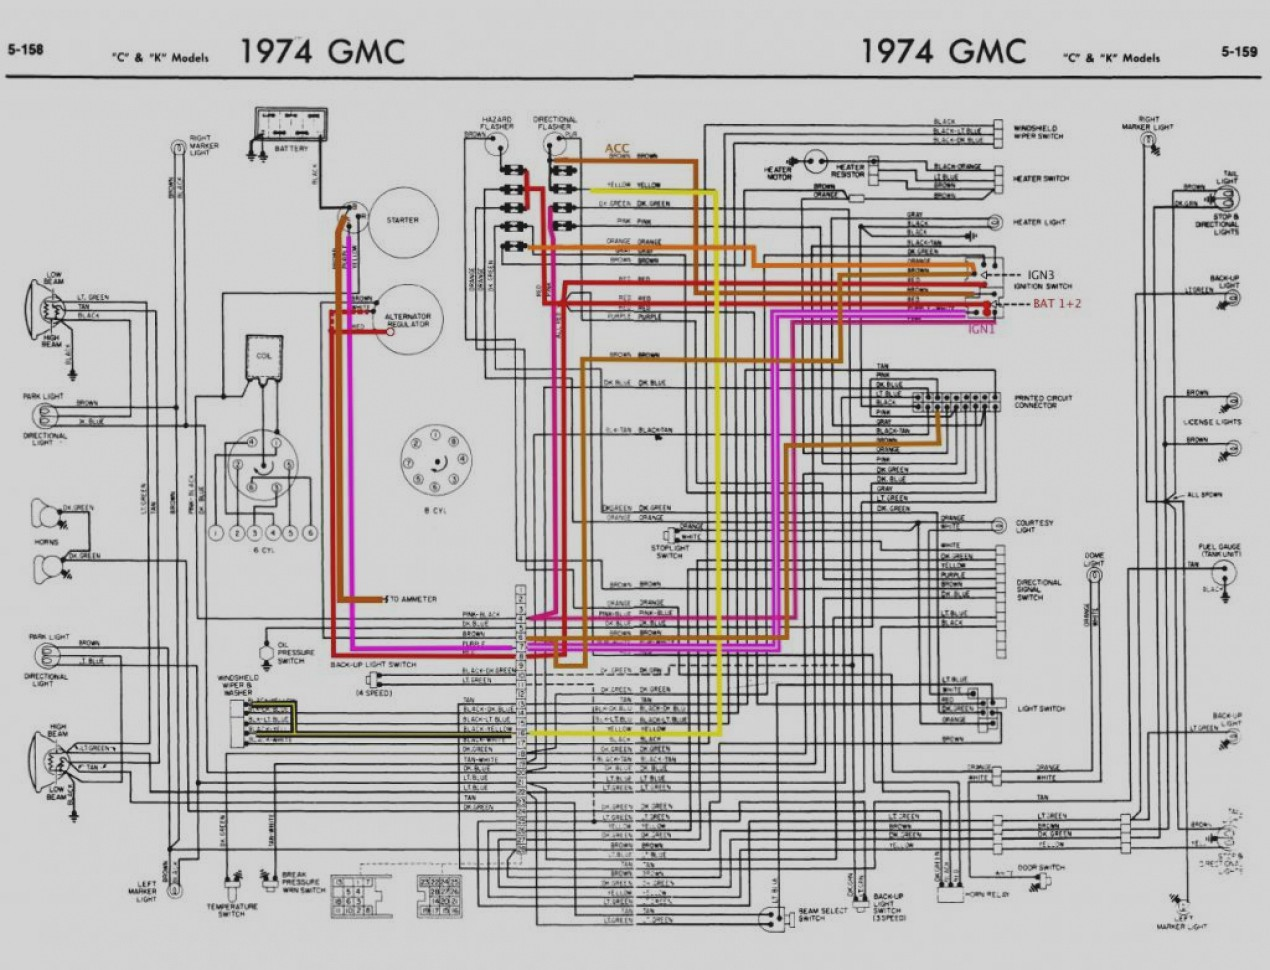 hight resolution of  gmc vandura fuse panel 1974 74 corvette wiring diagram manual ebay wire center u2022 rh pepsicolive co k 5